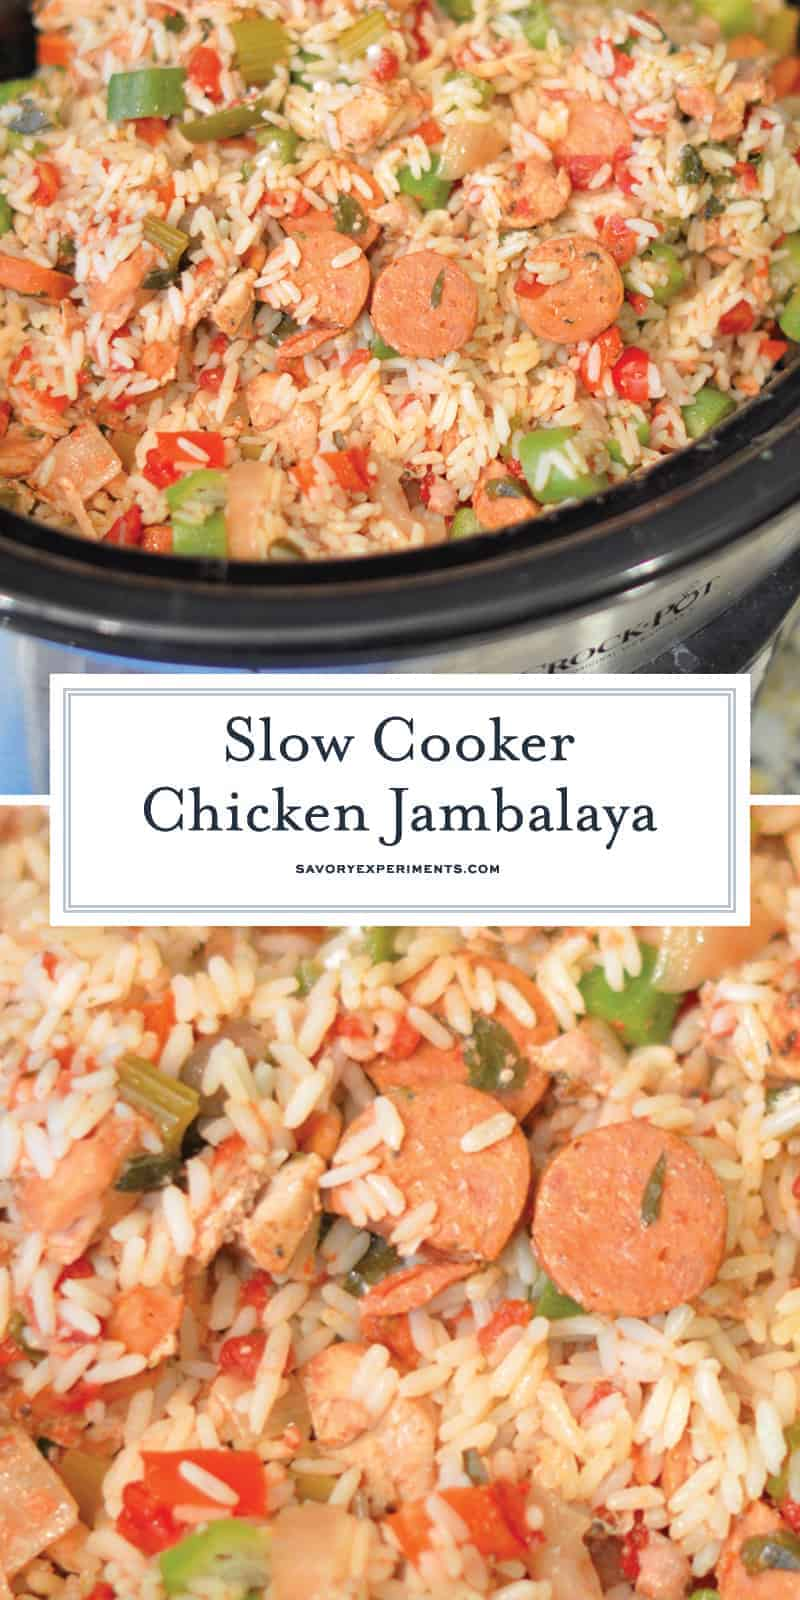 Slow Cooker Chicken Jambalaya is loaded with chicken, veggies, rice and zesty Creole seasoning. Only 10 minutes to prep! #slowcookerrecipes #slowcookerchickenjambalaya #chickenintheslowcooker www.savoryexperiments.com